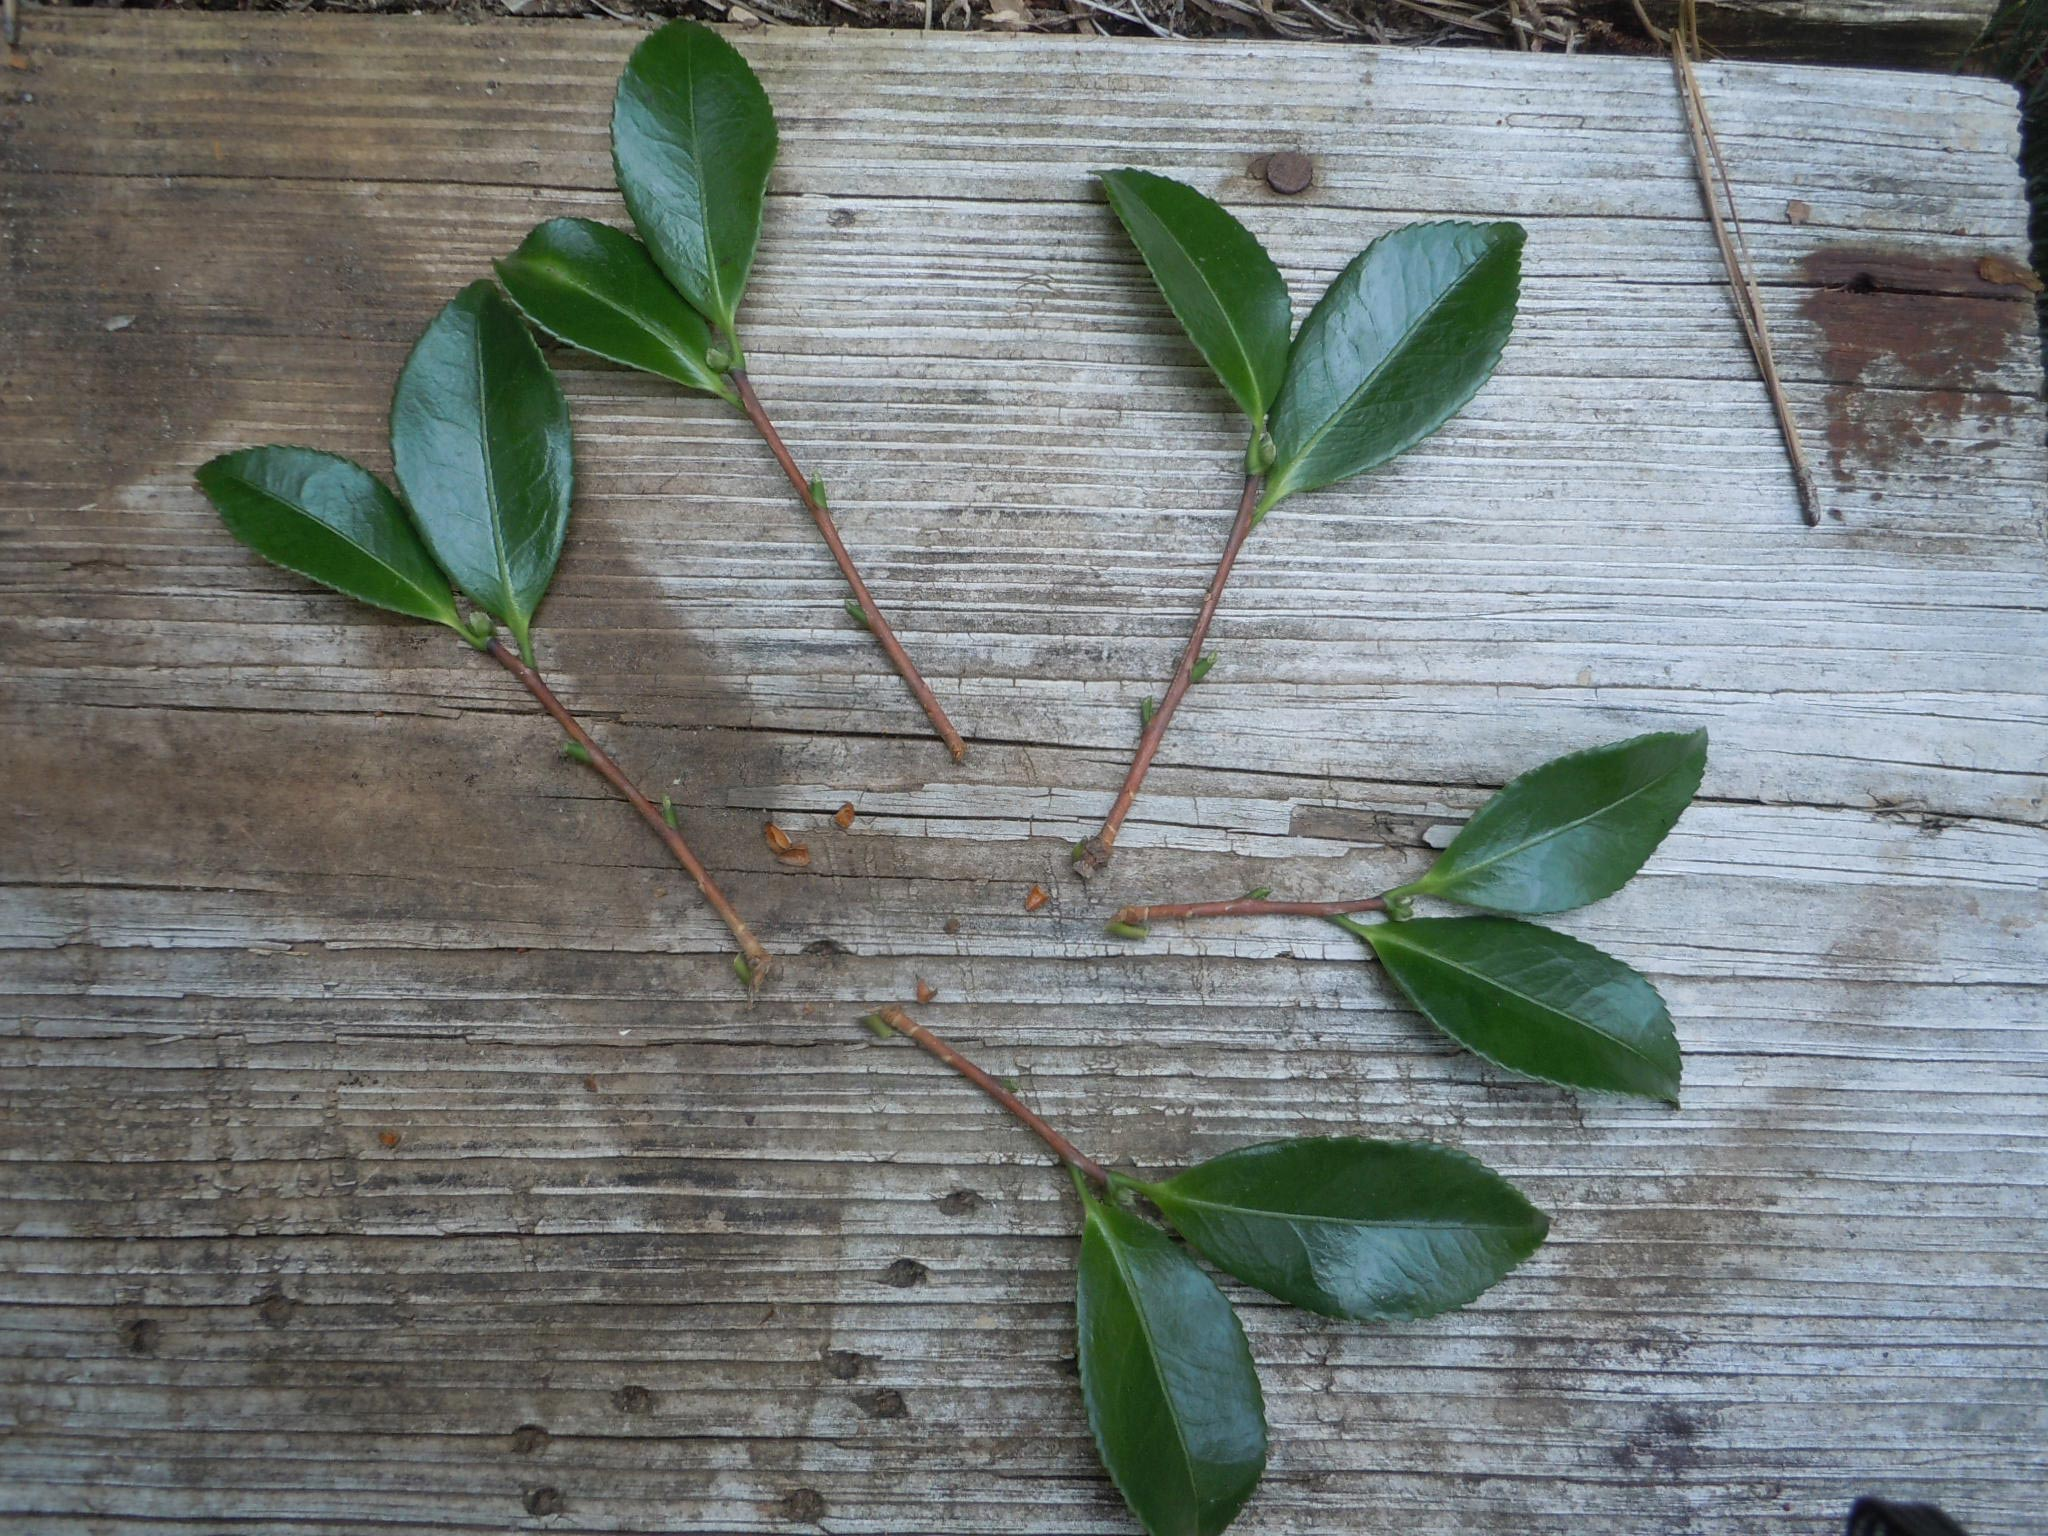 remove lower leaves, leaving only two at the tip